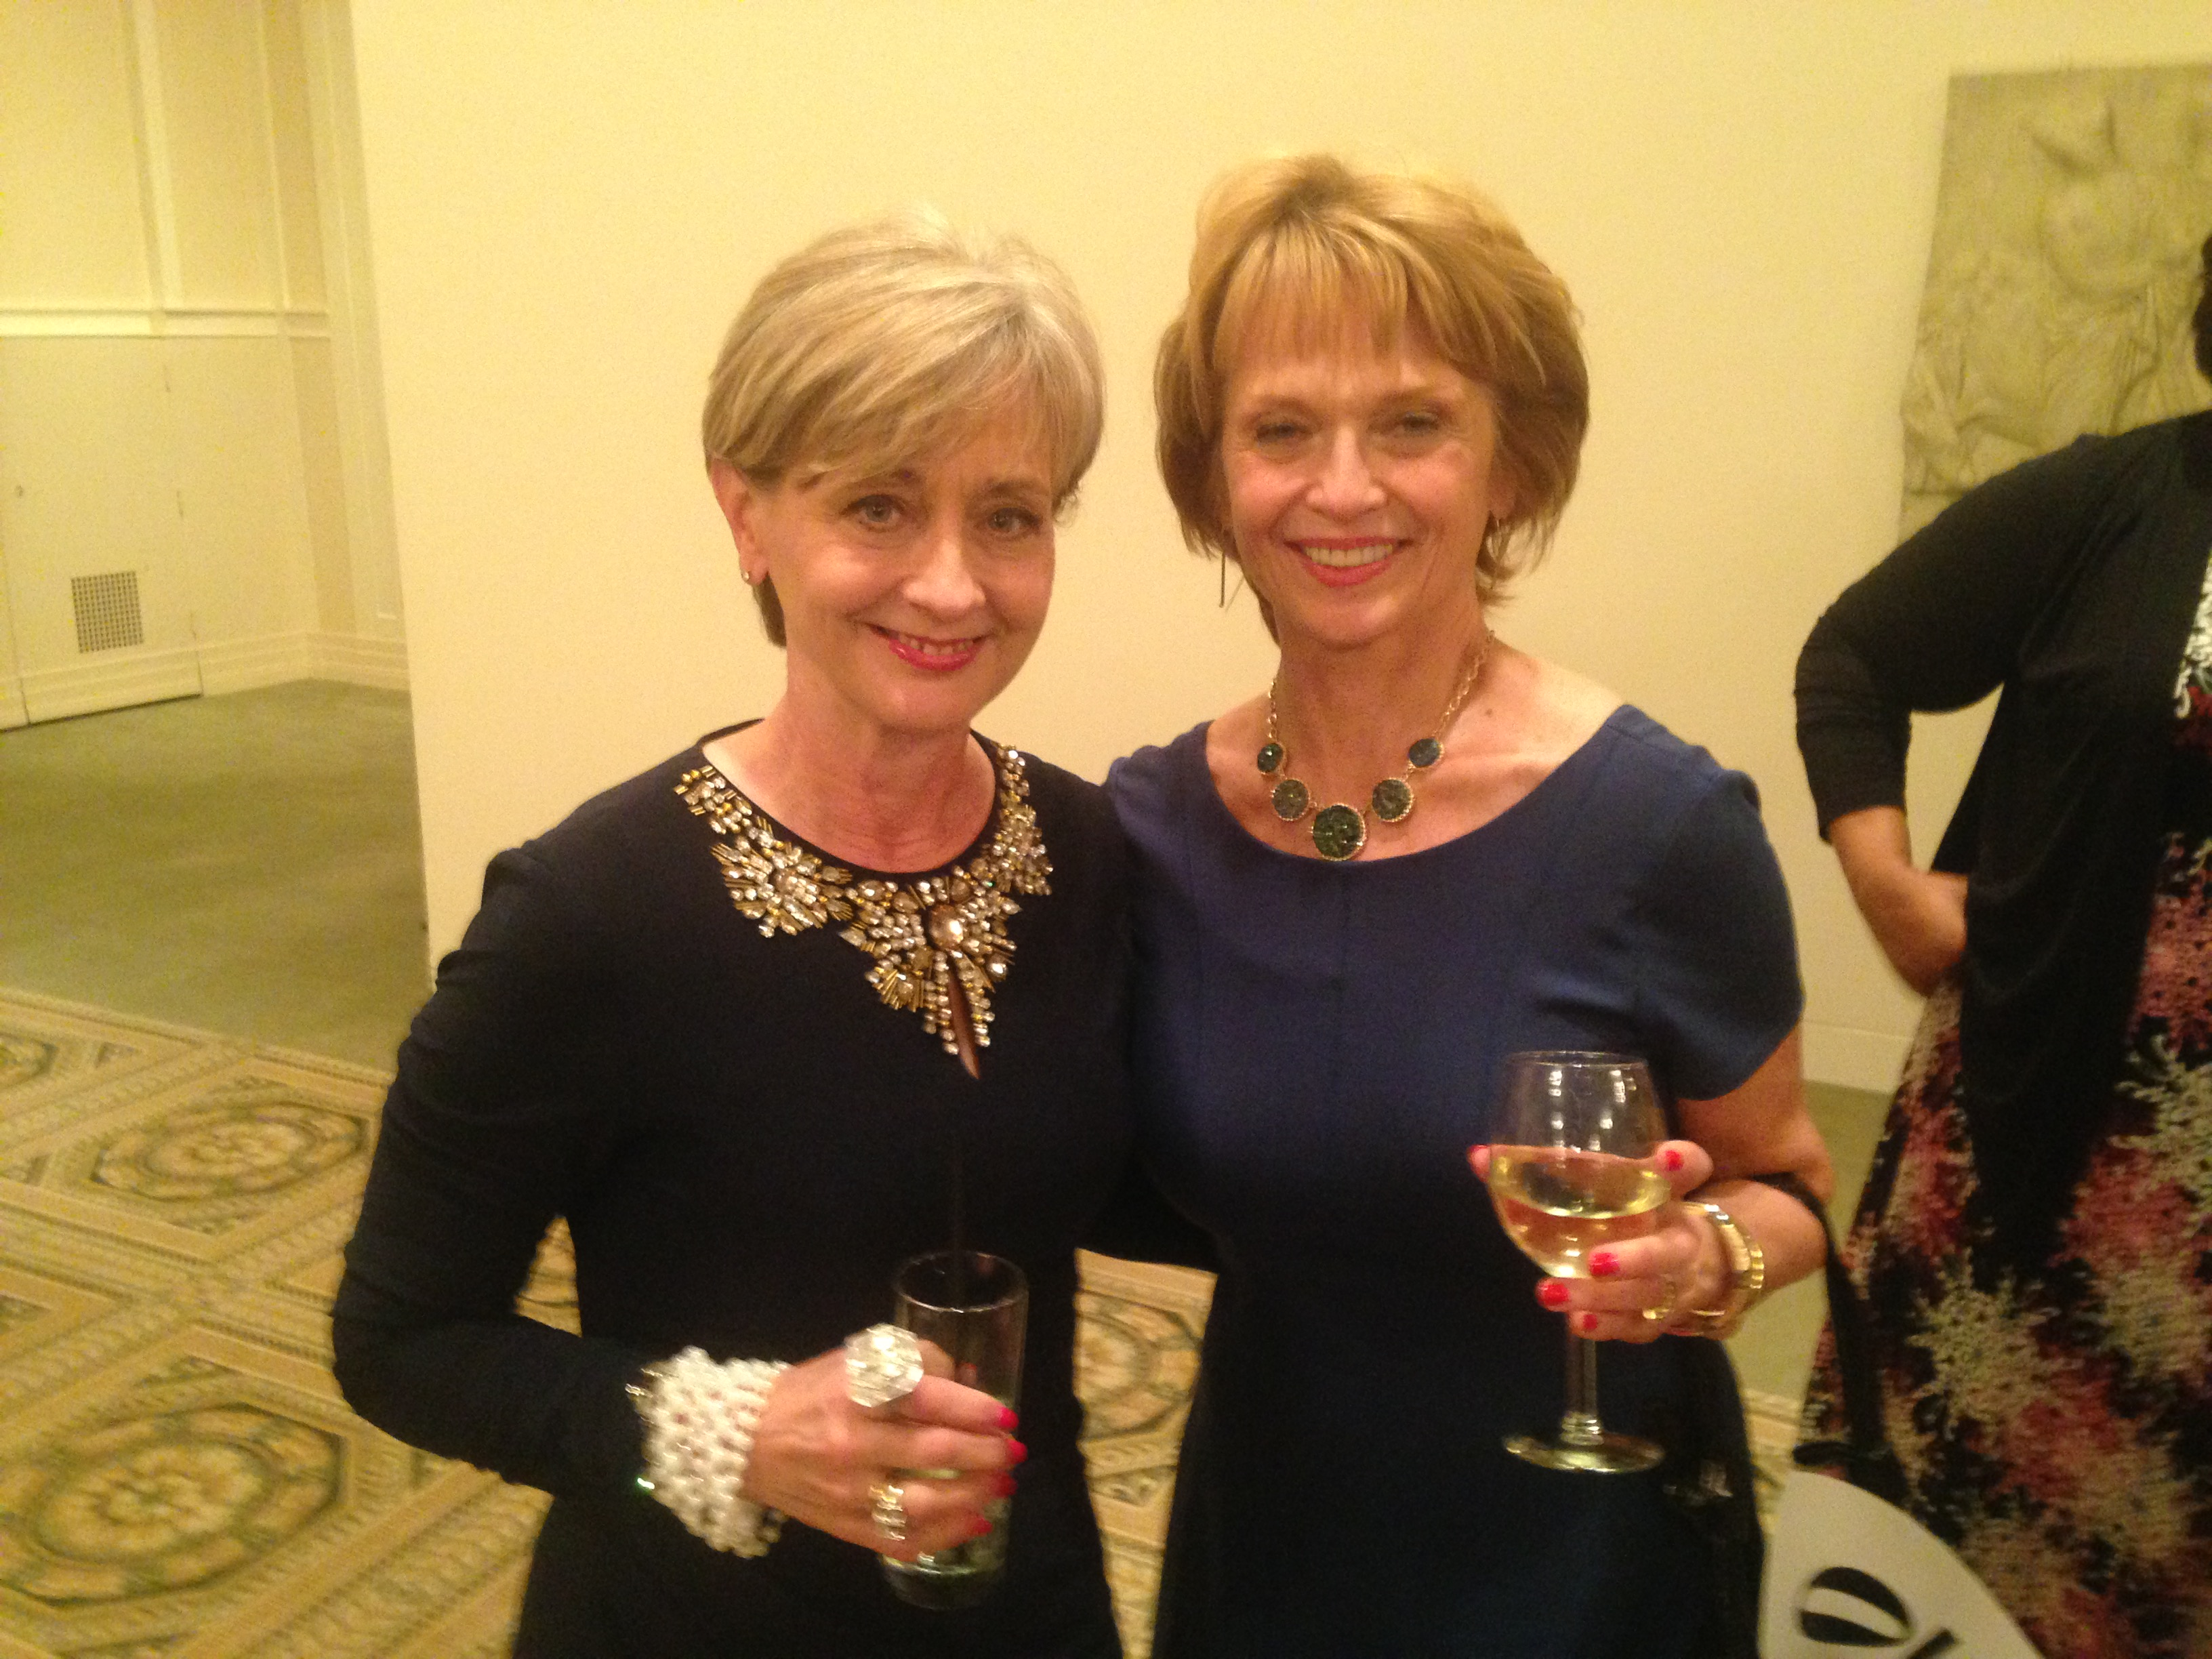 Clarinda Hanson White with Barb Attridge Co-Founder of Dress for Success Oregon April 2014 Fundrais